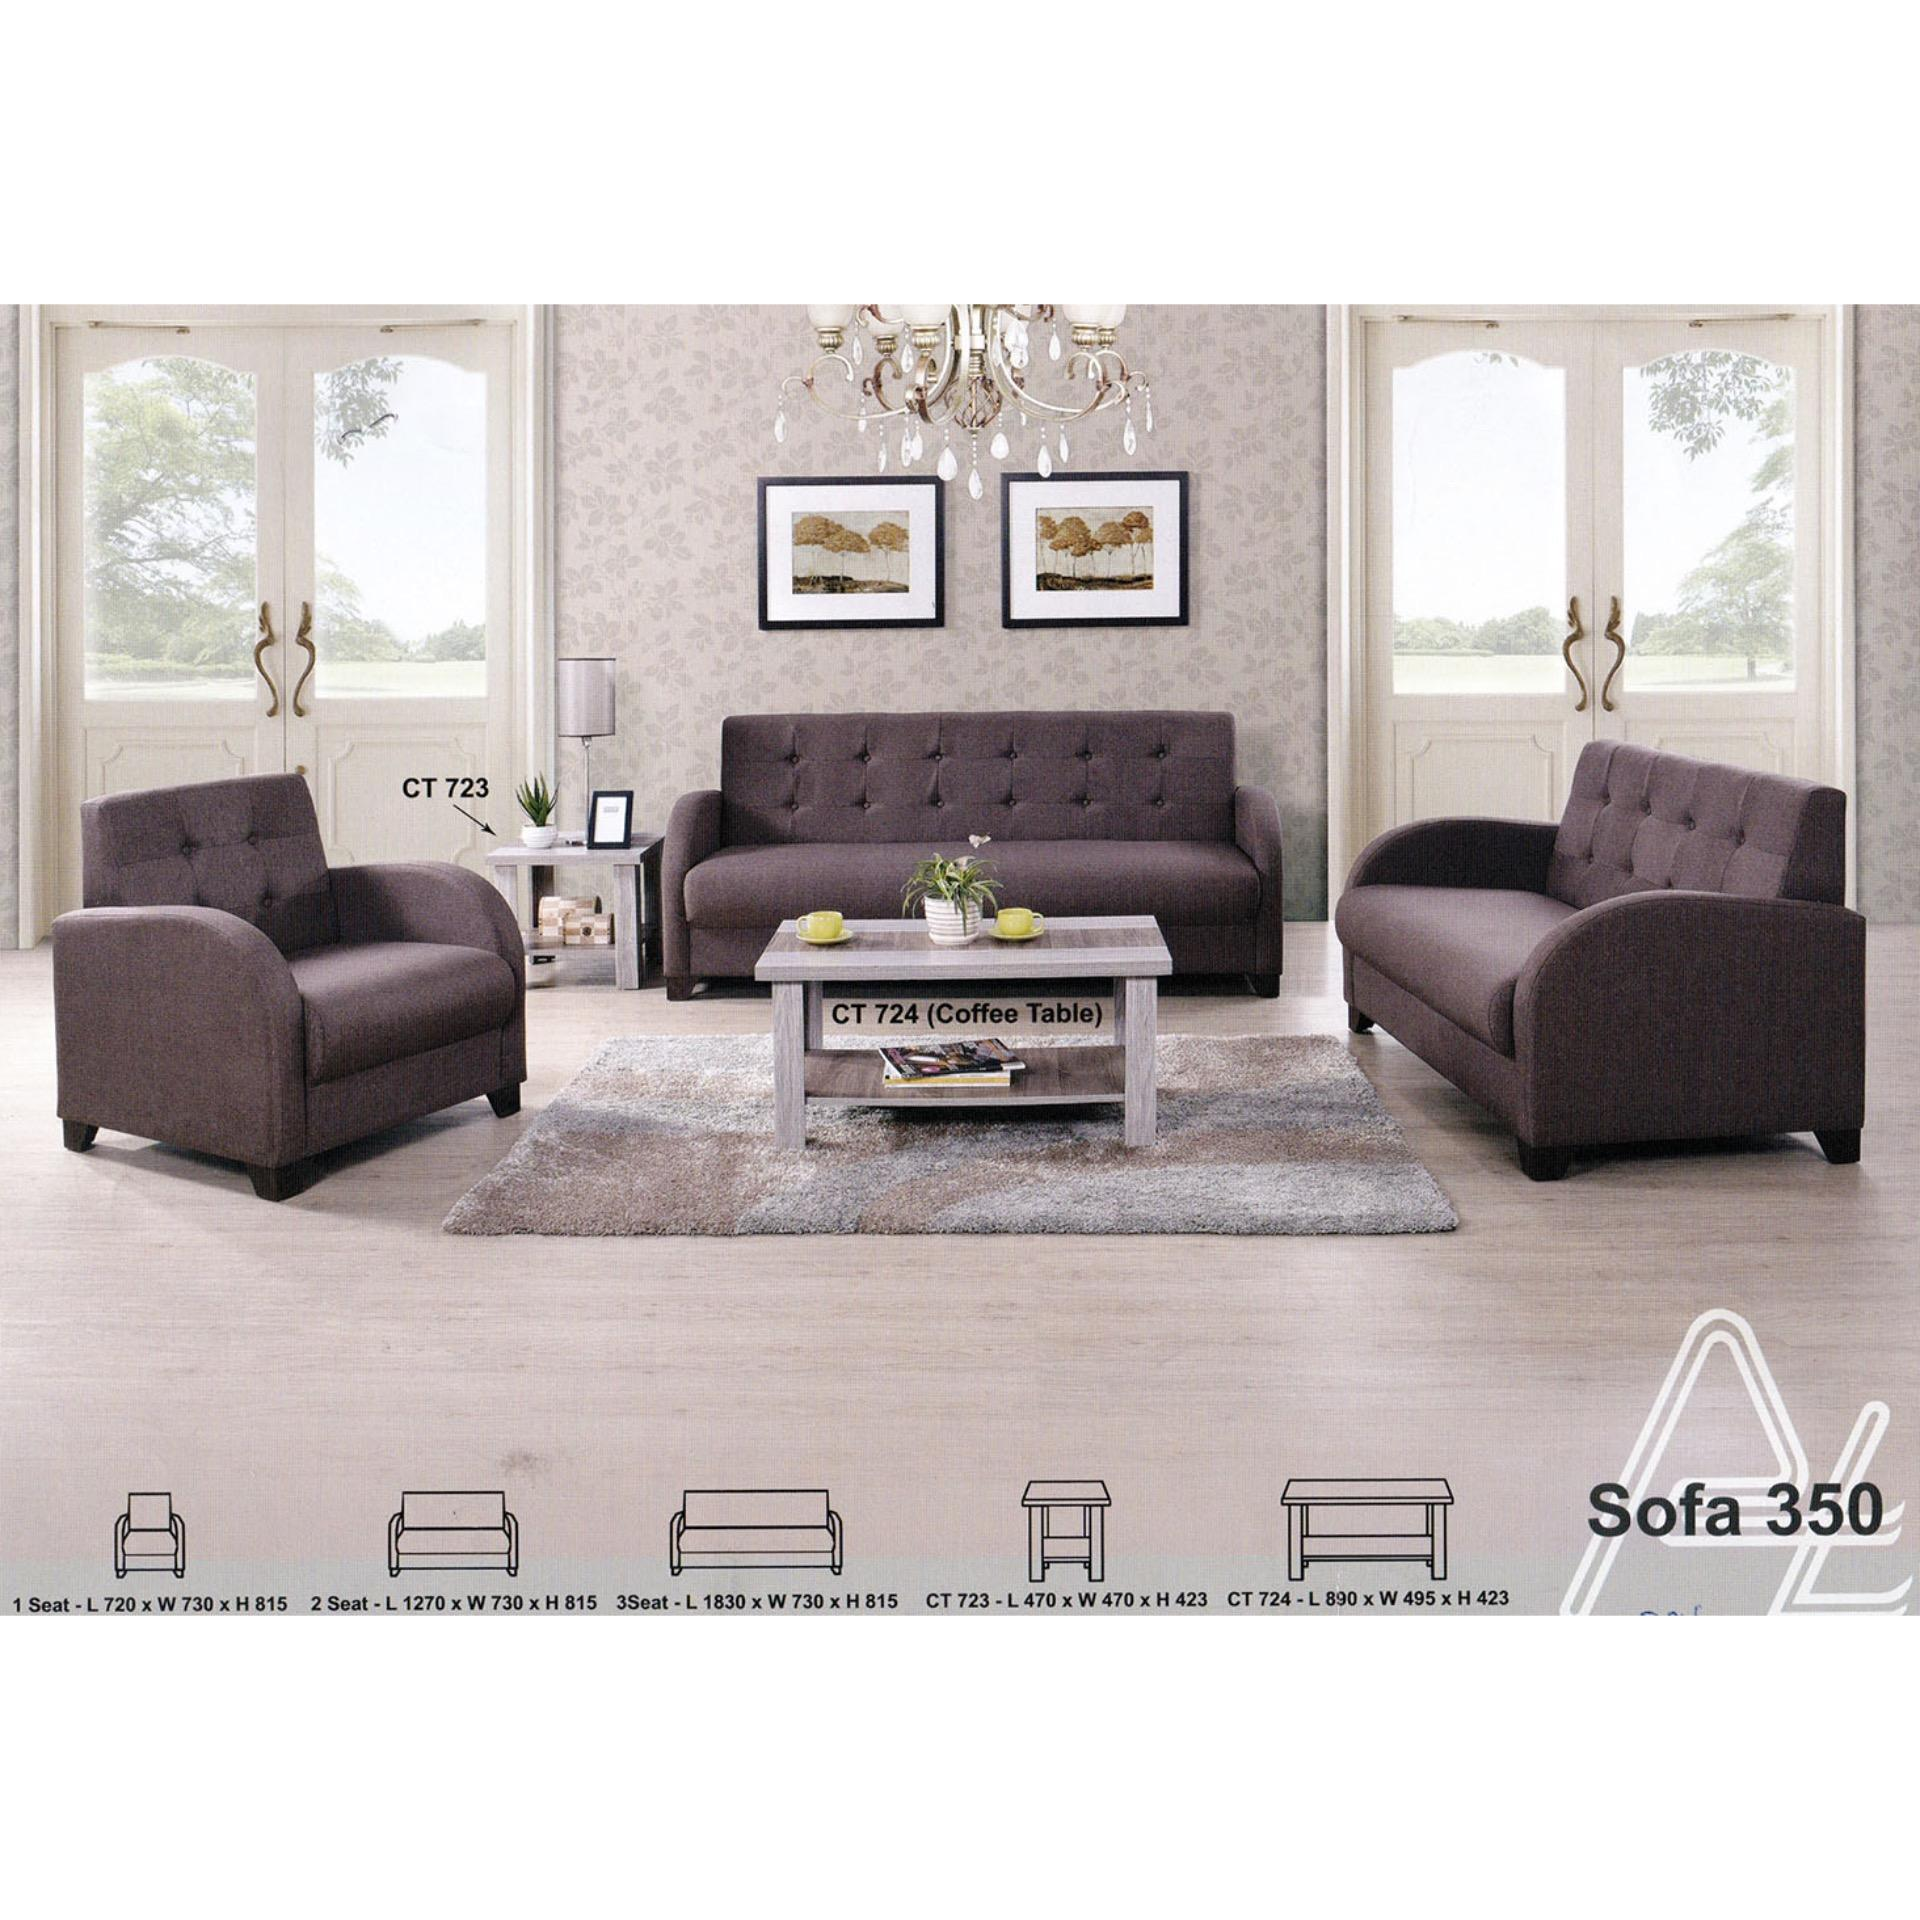 1+2+3 Seater Fabric Cushion Sofa/Lo (end 4/28/2021 12:00 AM